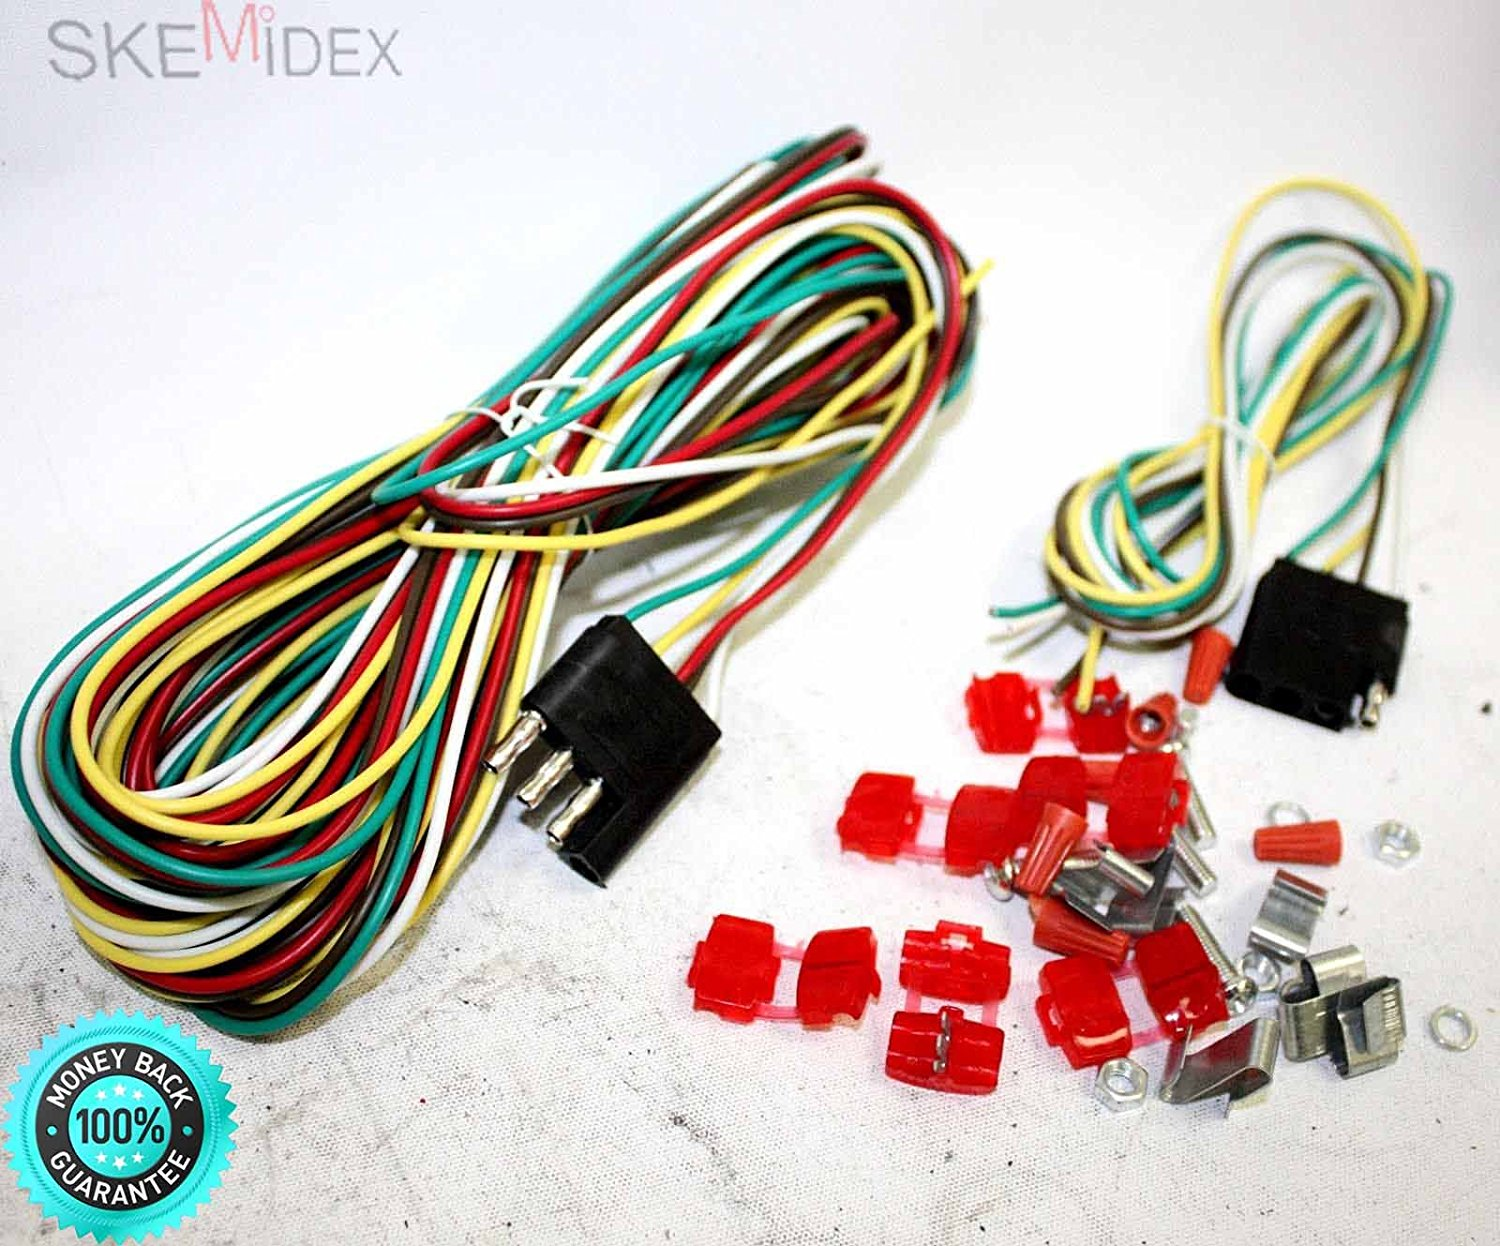 Cheap Car Wiring Connectors Find Deals On Trailer Light Harness Kit Get Quotations Skemidex 25ft 4 Way Connection Flat Wire Extension